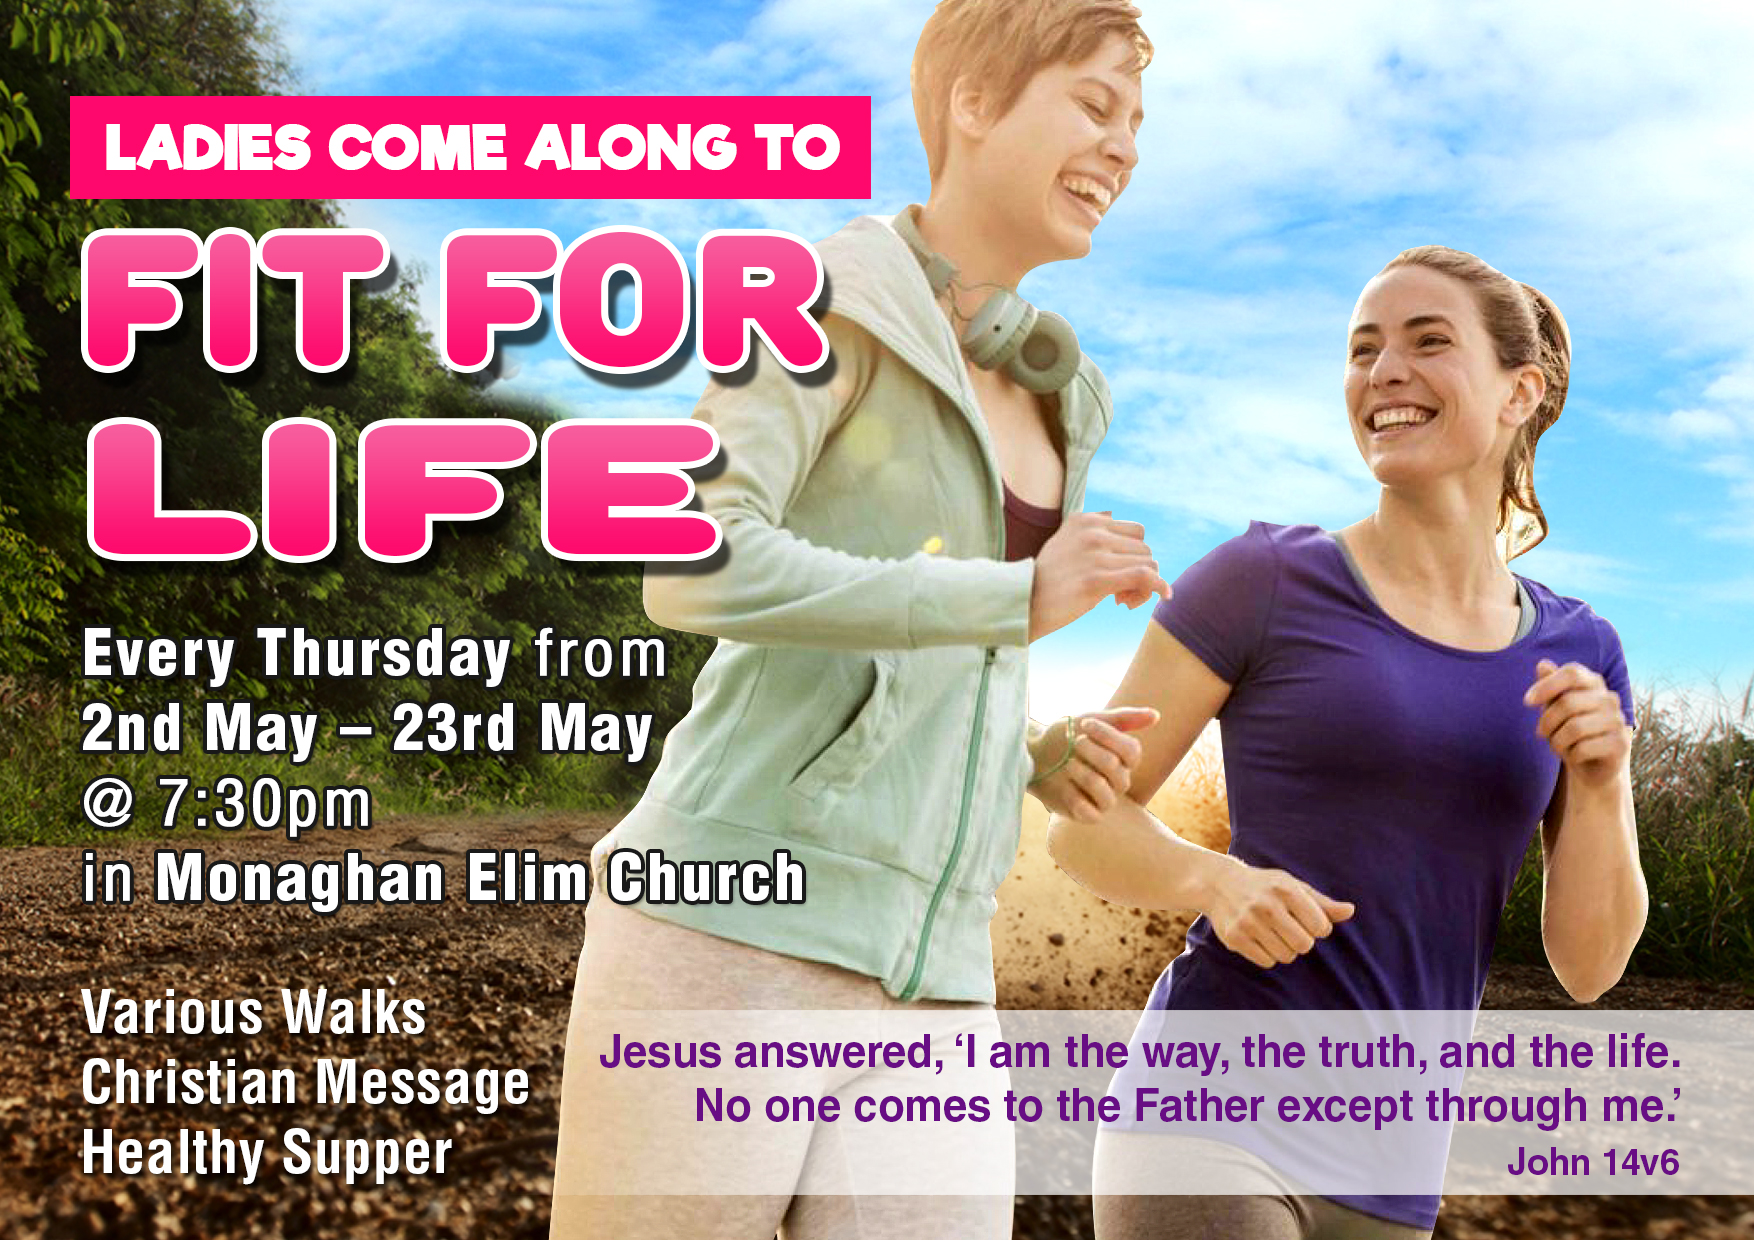 Monaghan-Elim-A6-Flyer_Fit-for-Life